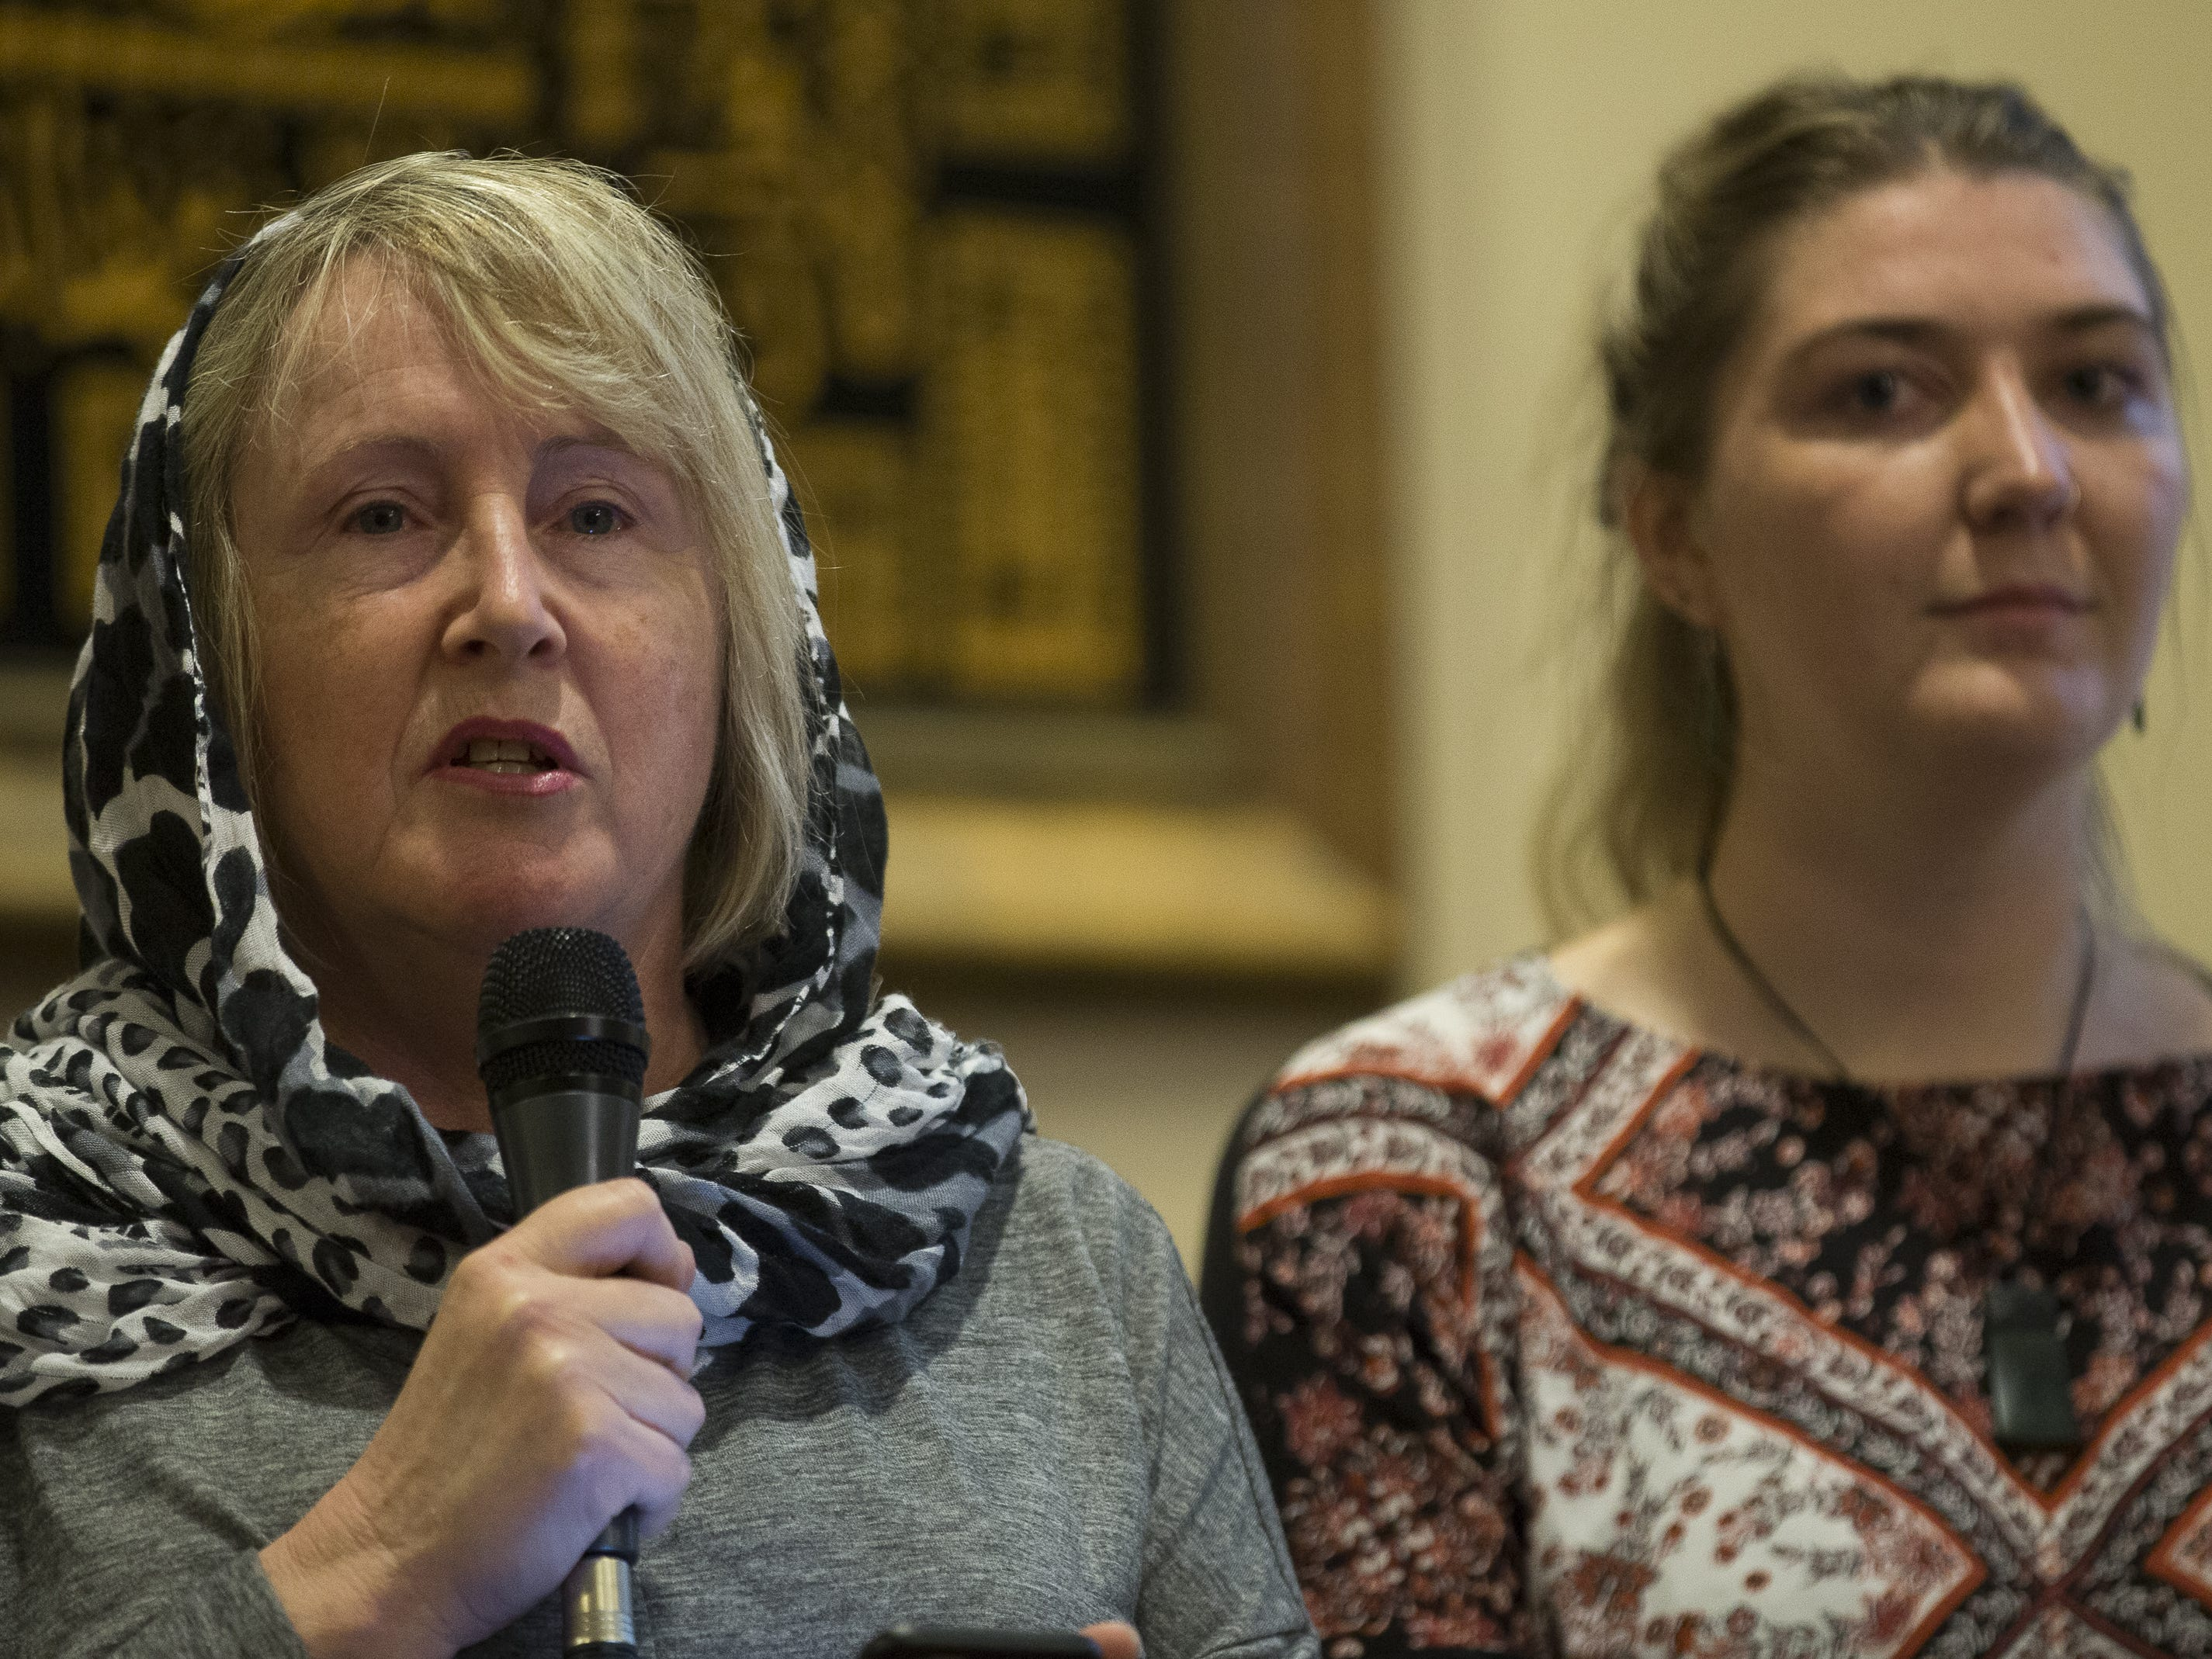 Jo Quinn (left) from Christchurch New Zealand, and Ema Carol (right) from New Zealand, speak at a vigil held at the Islamic Center of Northeast Valley in Scottsdale, Ariz., on Sunday, March 17, 2019, in memory of the Christchurch New Zealand shooting victims.